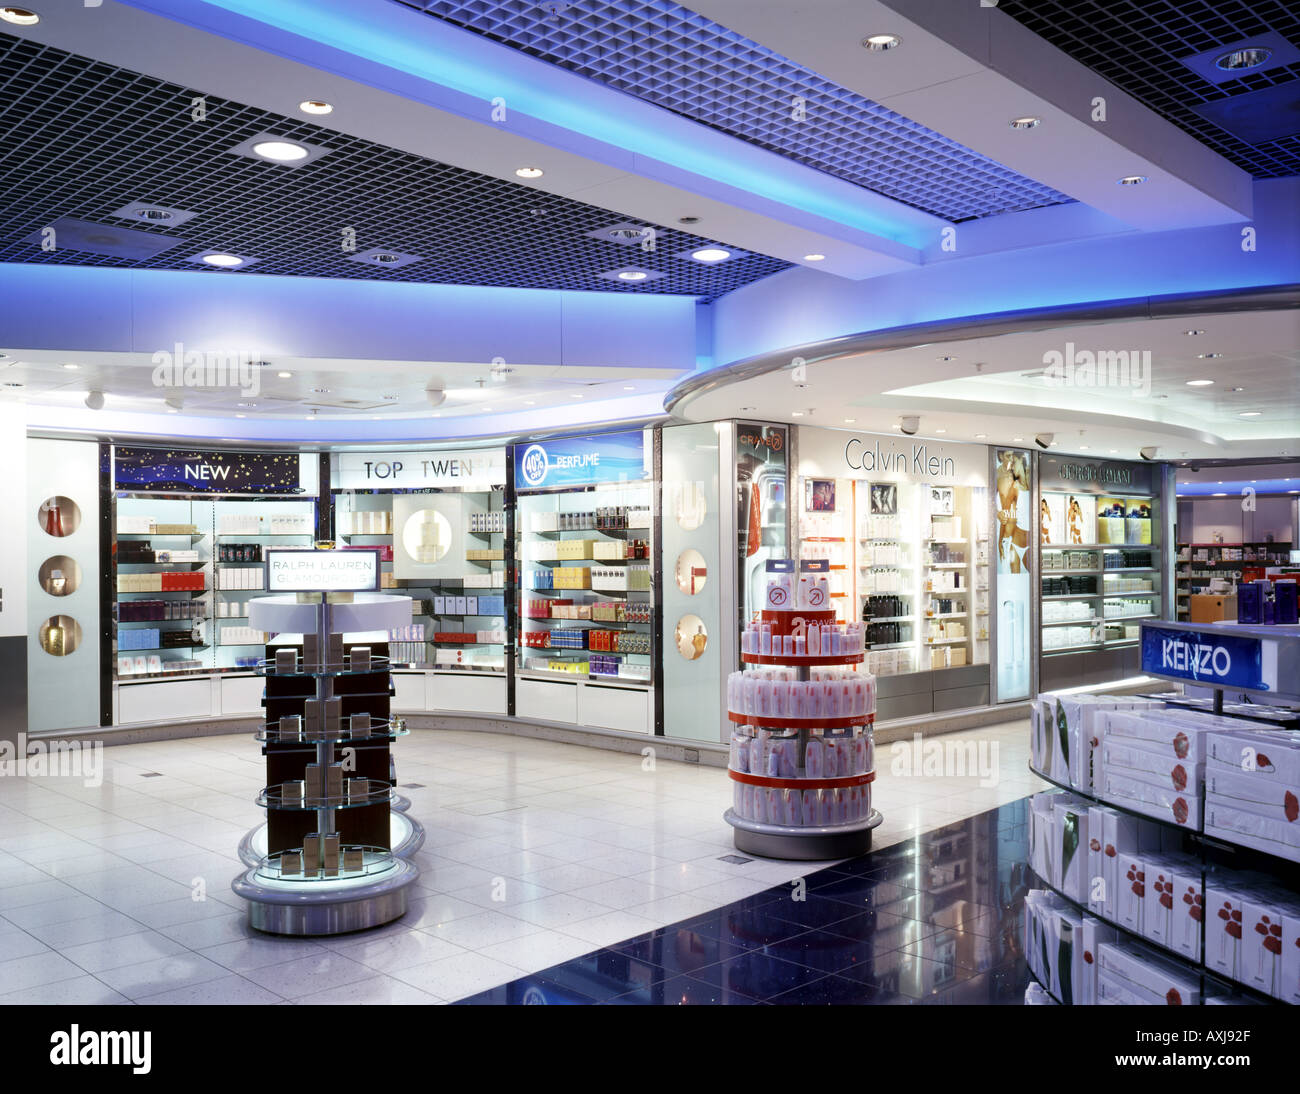 bd3862b500e1 Stansted Airport Duty Free Shop Stock Photos   Stansted Airport Duty ...